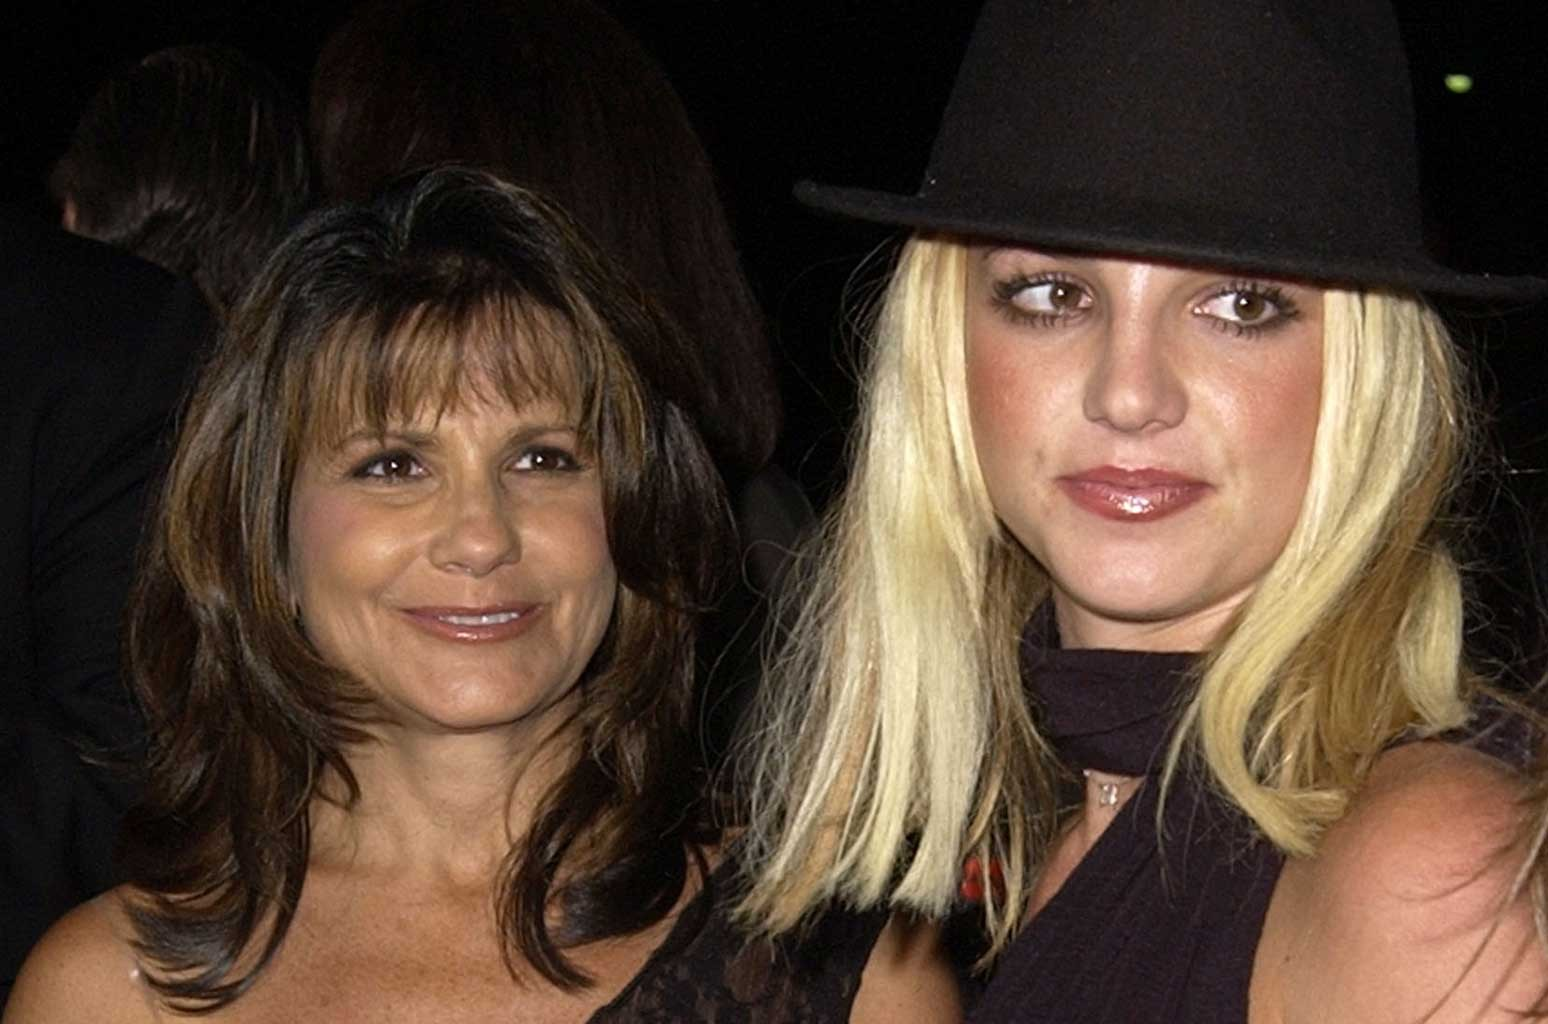 Lynne Spears and Britney Spears in 2002.